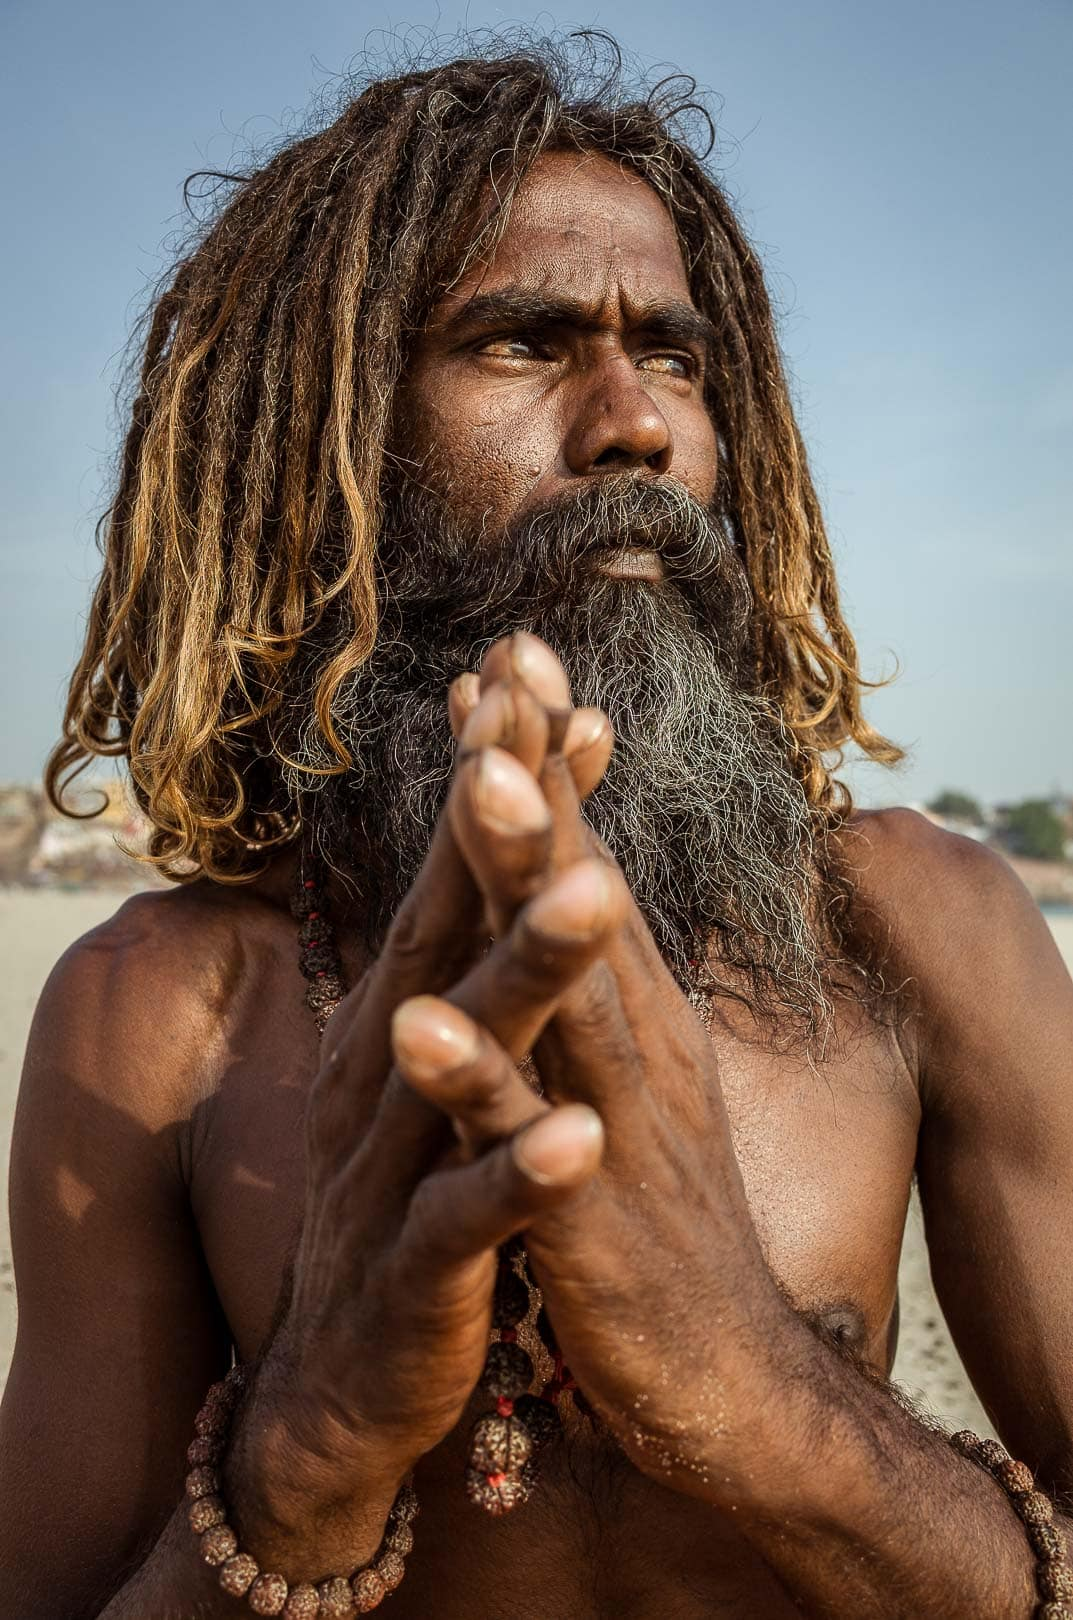 A Sadhu holds his hands together and looks towards the sun in Varanasi, India